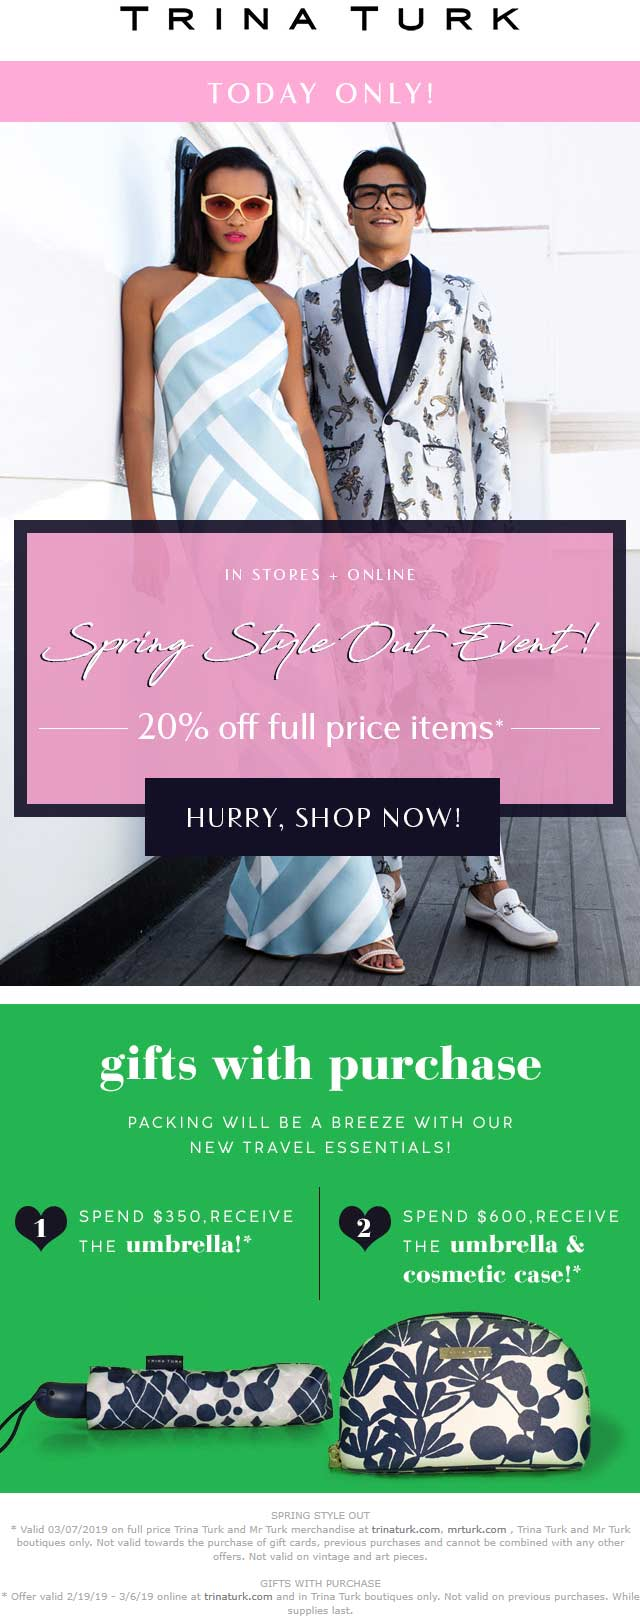 Trina Turk Coupon August 2020 20% off today at Trina Turk, ditto online